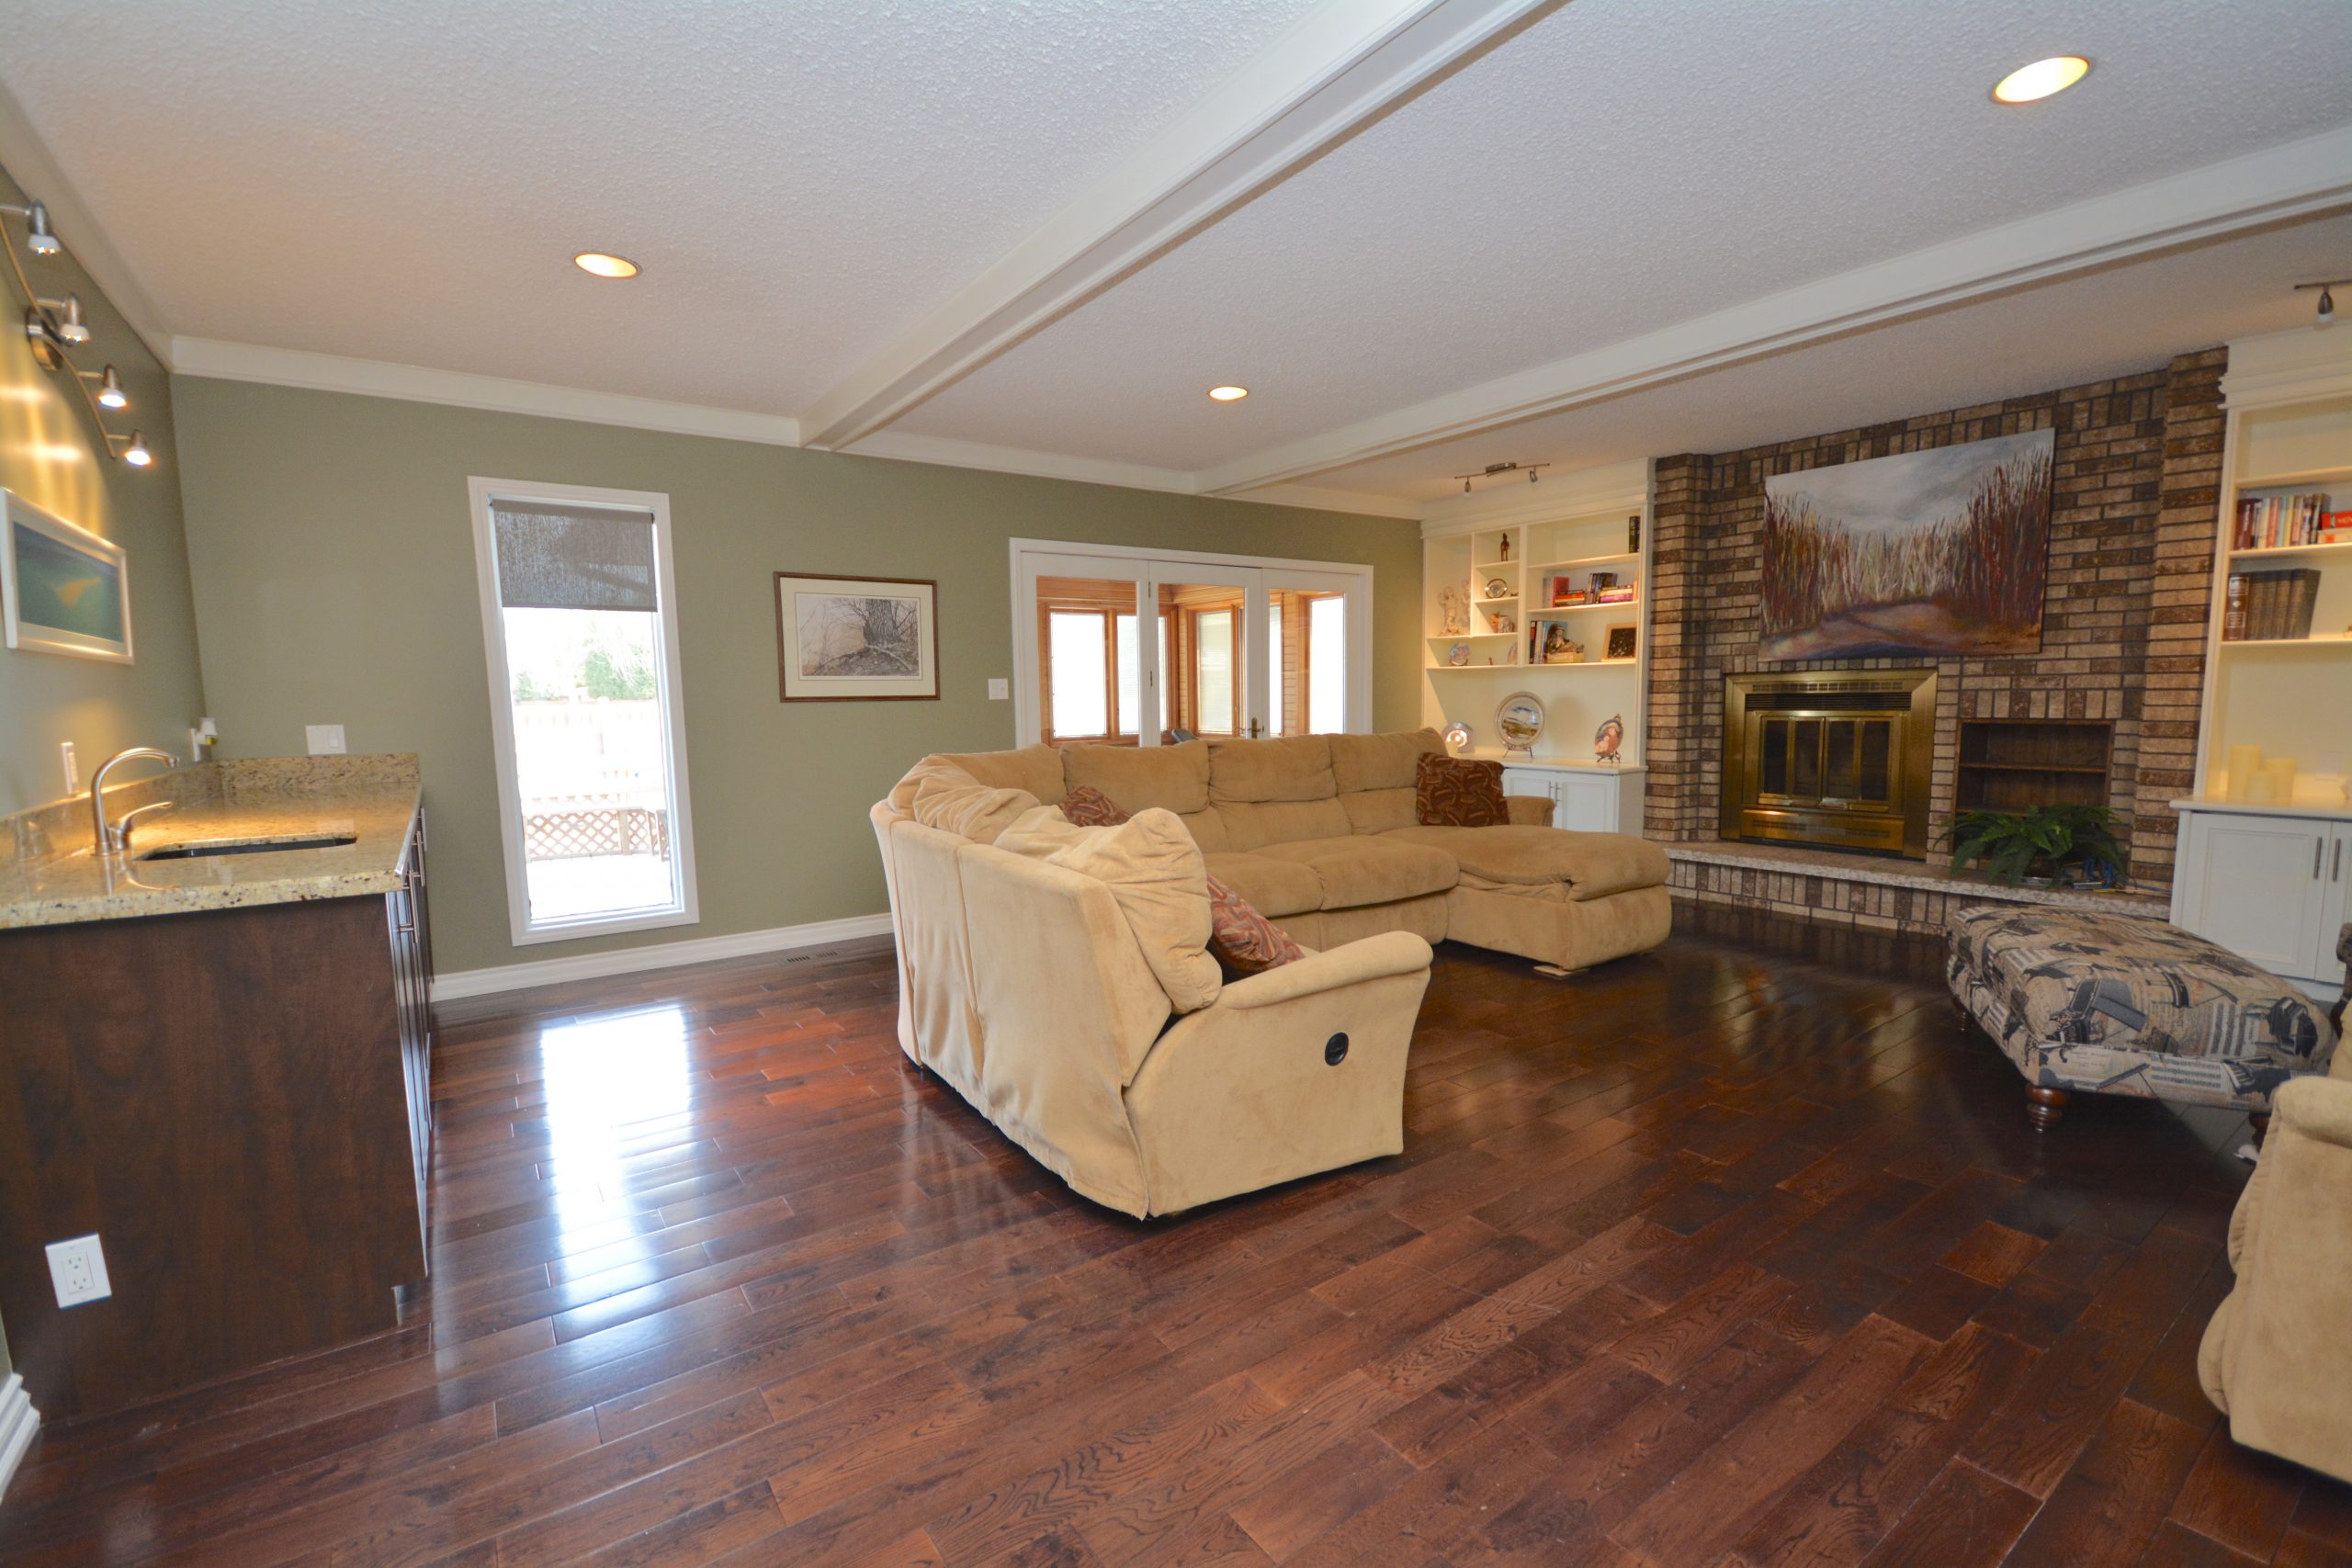 47 Attache Dr – Once-in-a-lifetime opportunity!